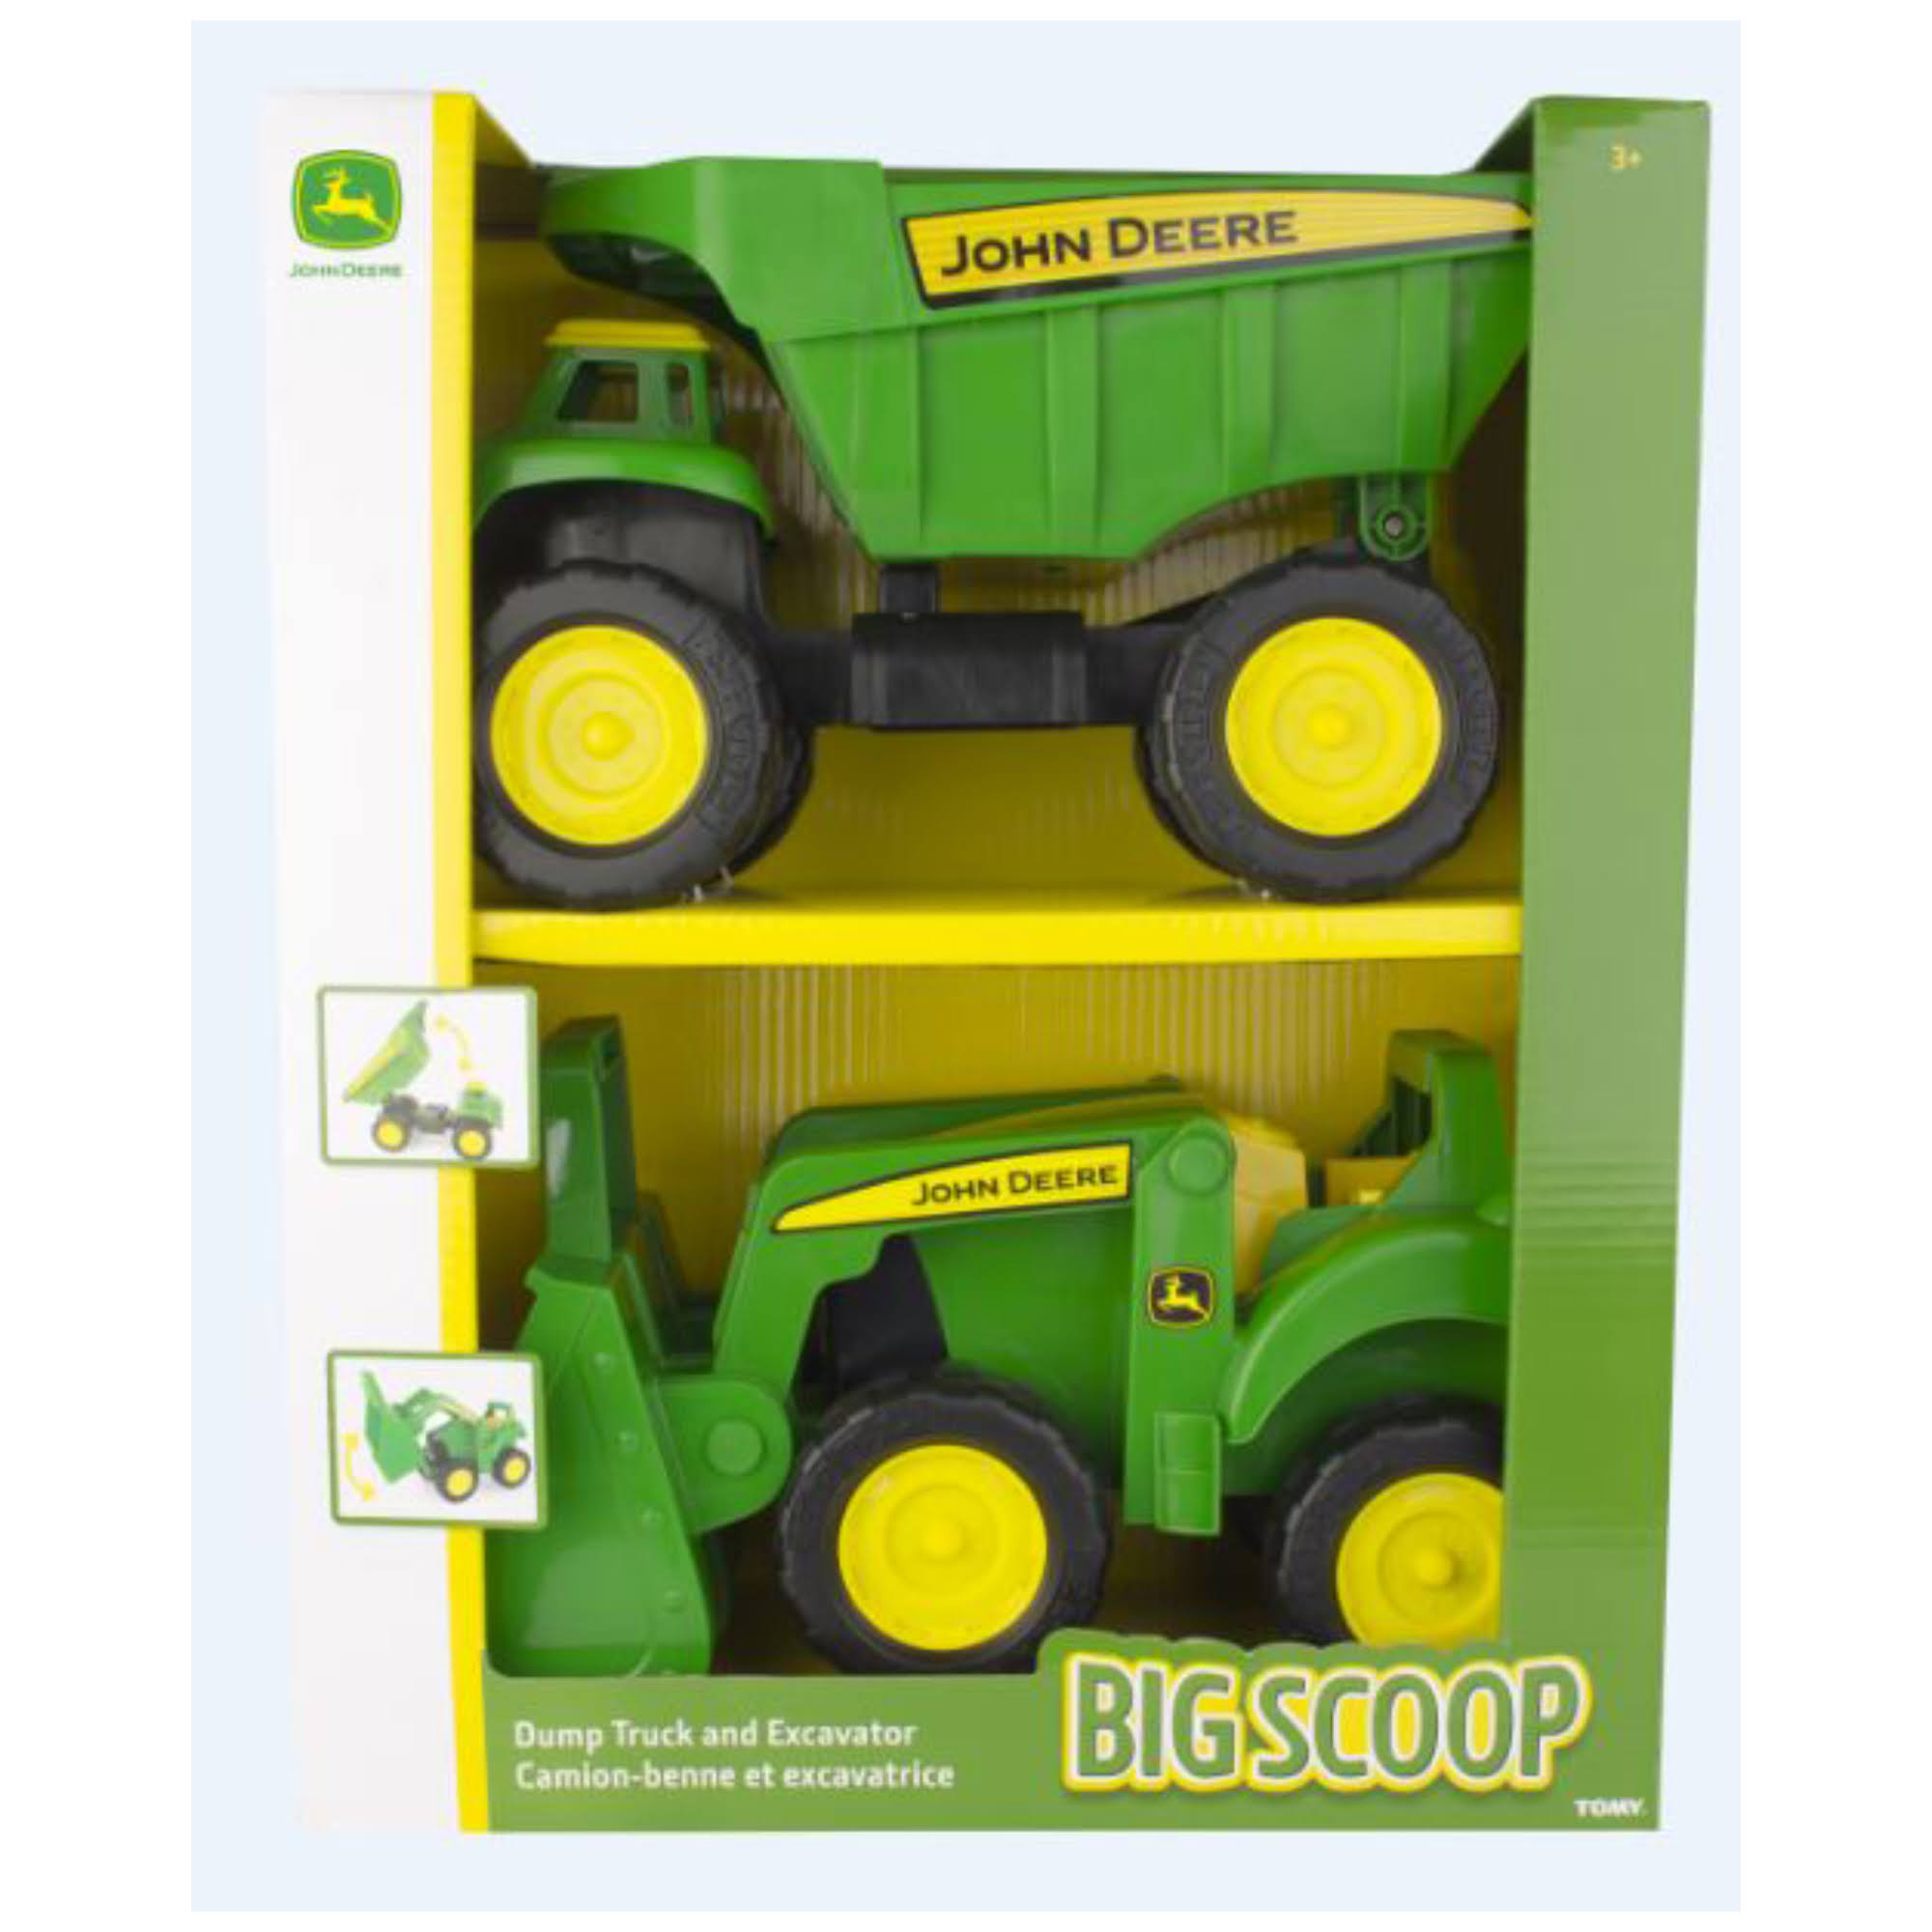 John Deere Big Scoop Dump Truck and Tractor Loader Playset